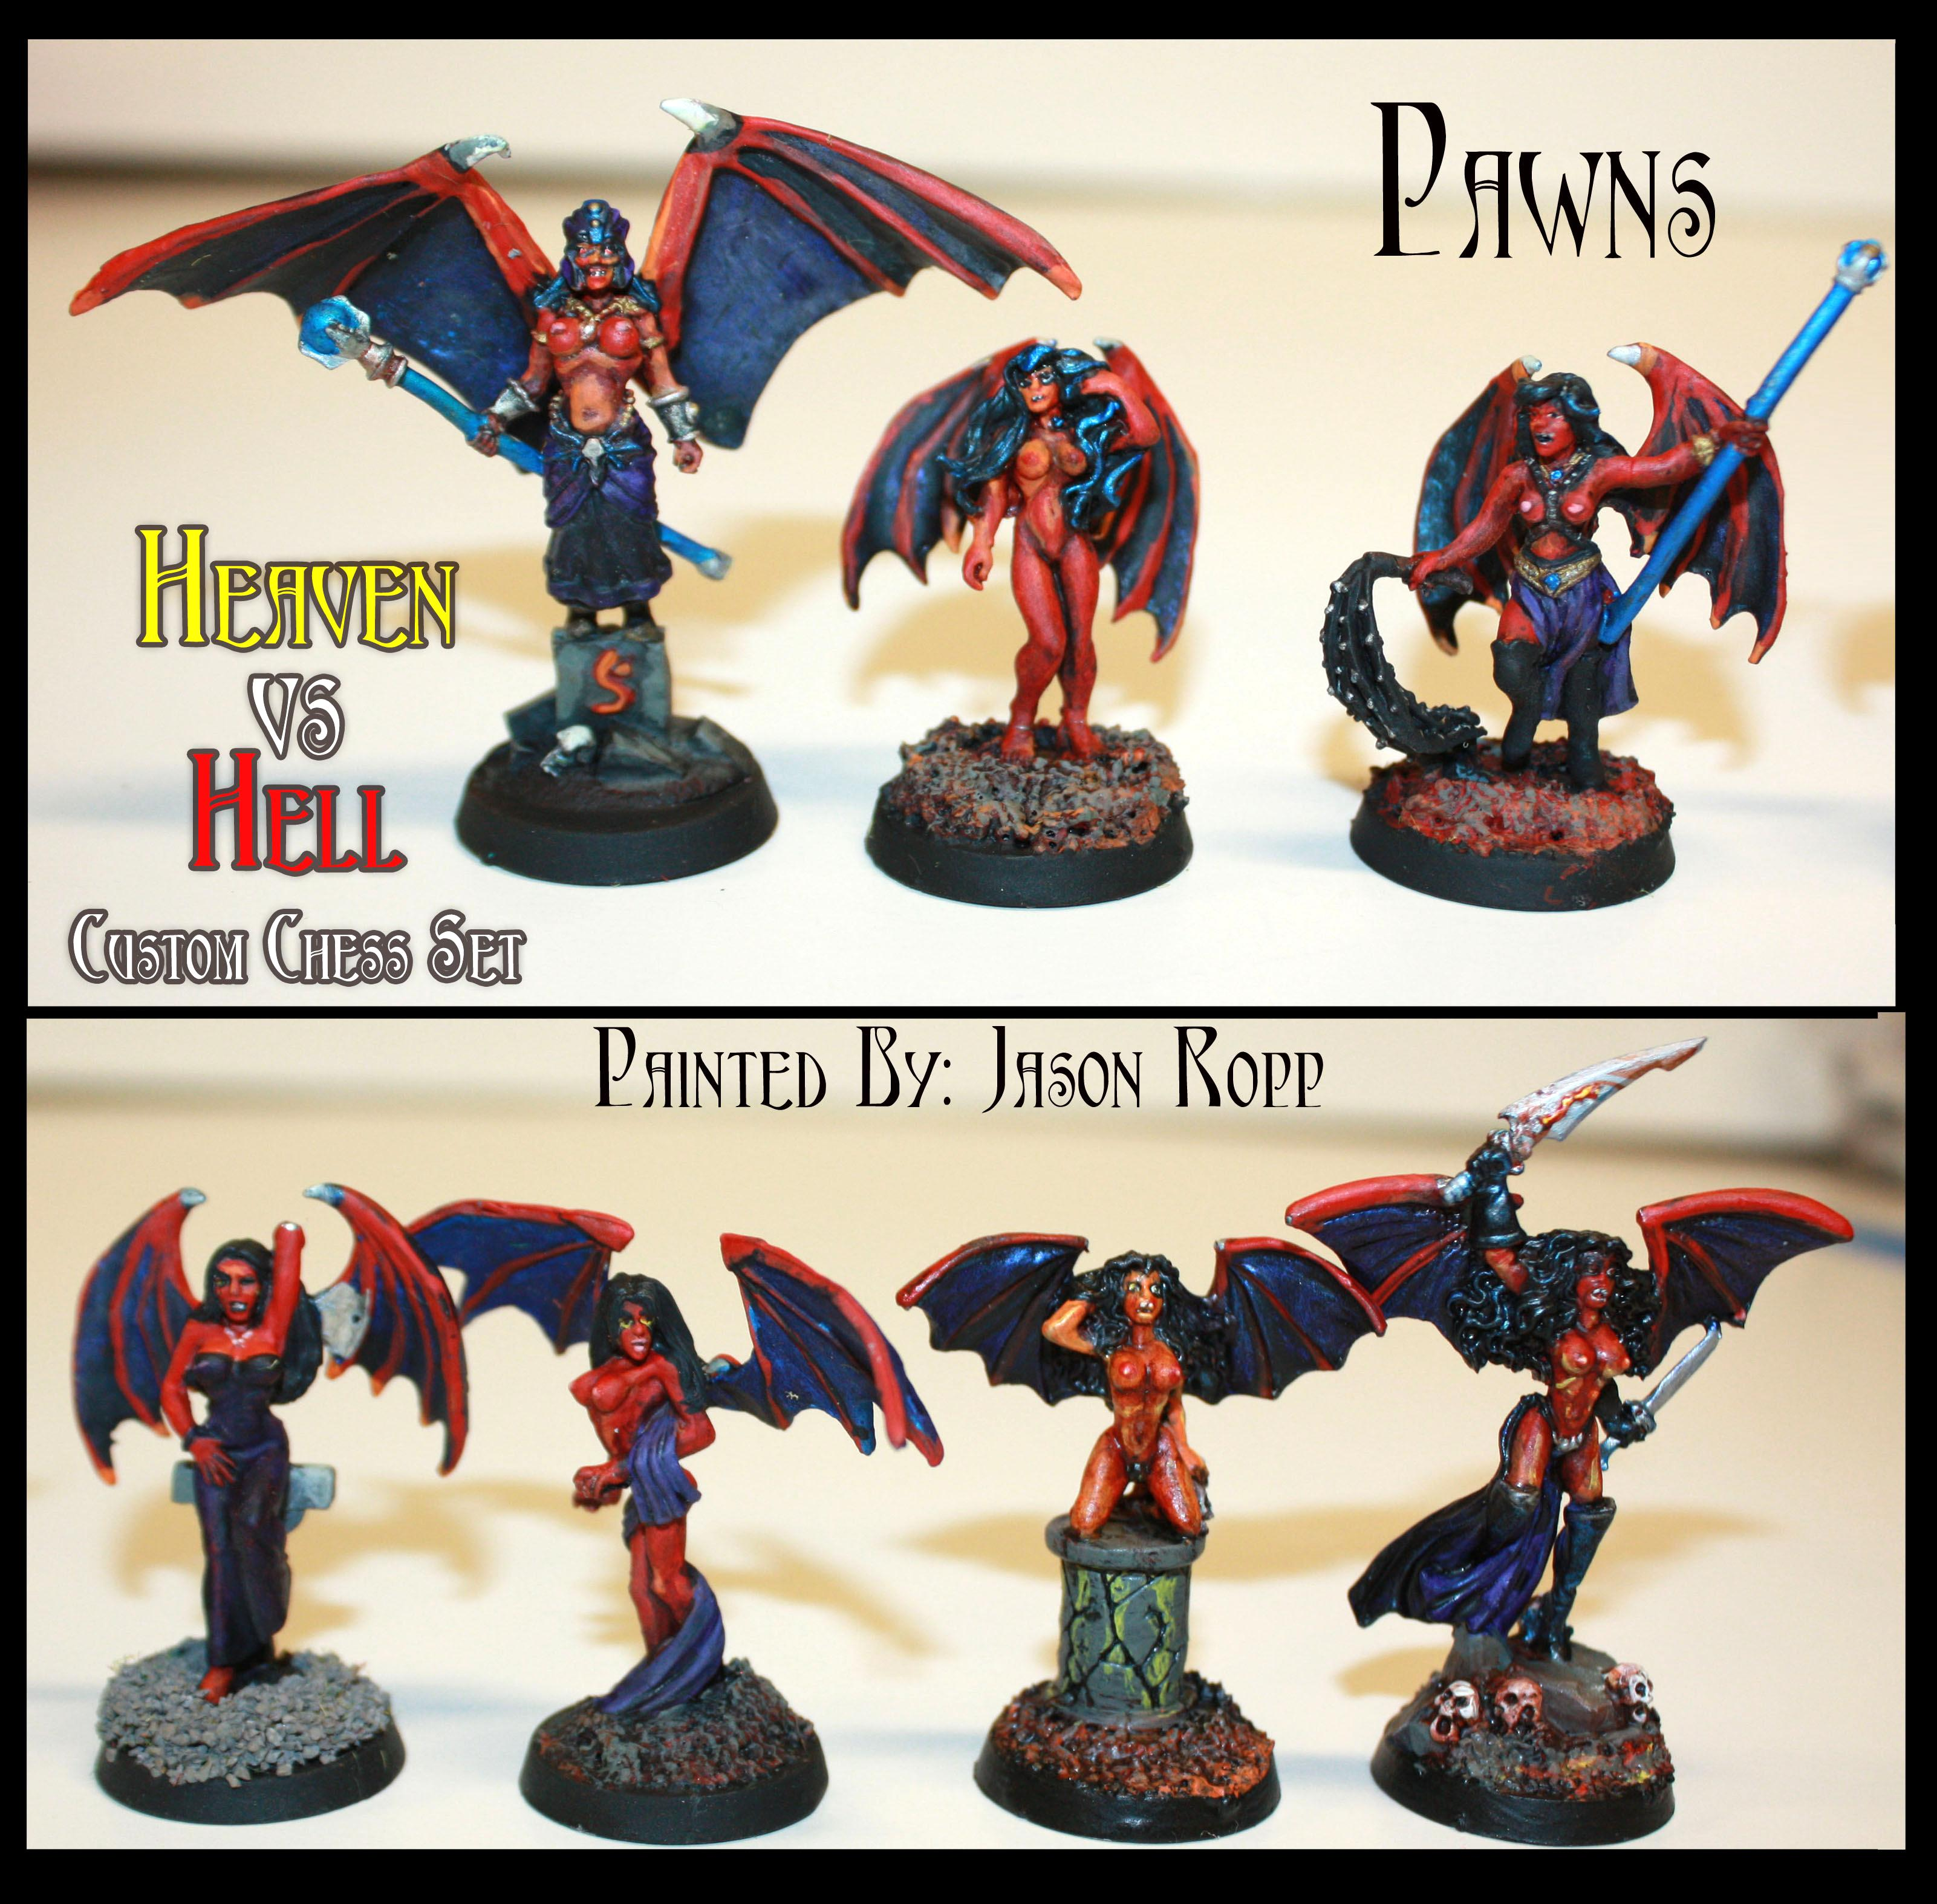 Angel, Chess, Custom, Daemons, Devils, Heaven, Hell, Miniatures, Nightmare Chess, Reaper, Set, Succubus, Succubus Pawns, Vs